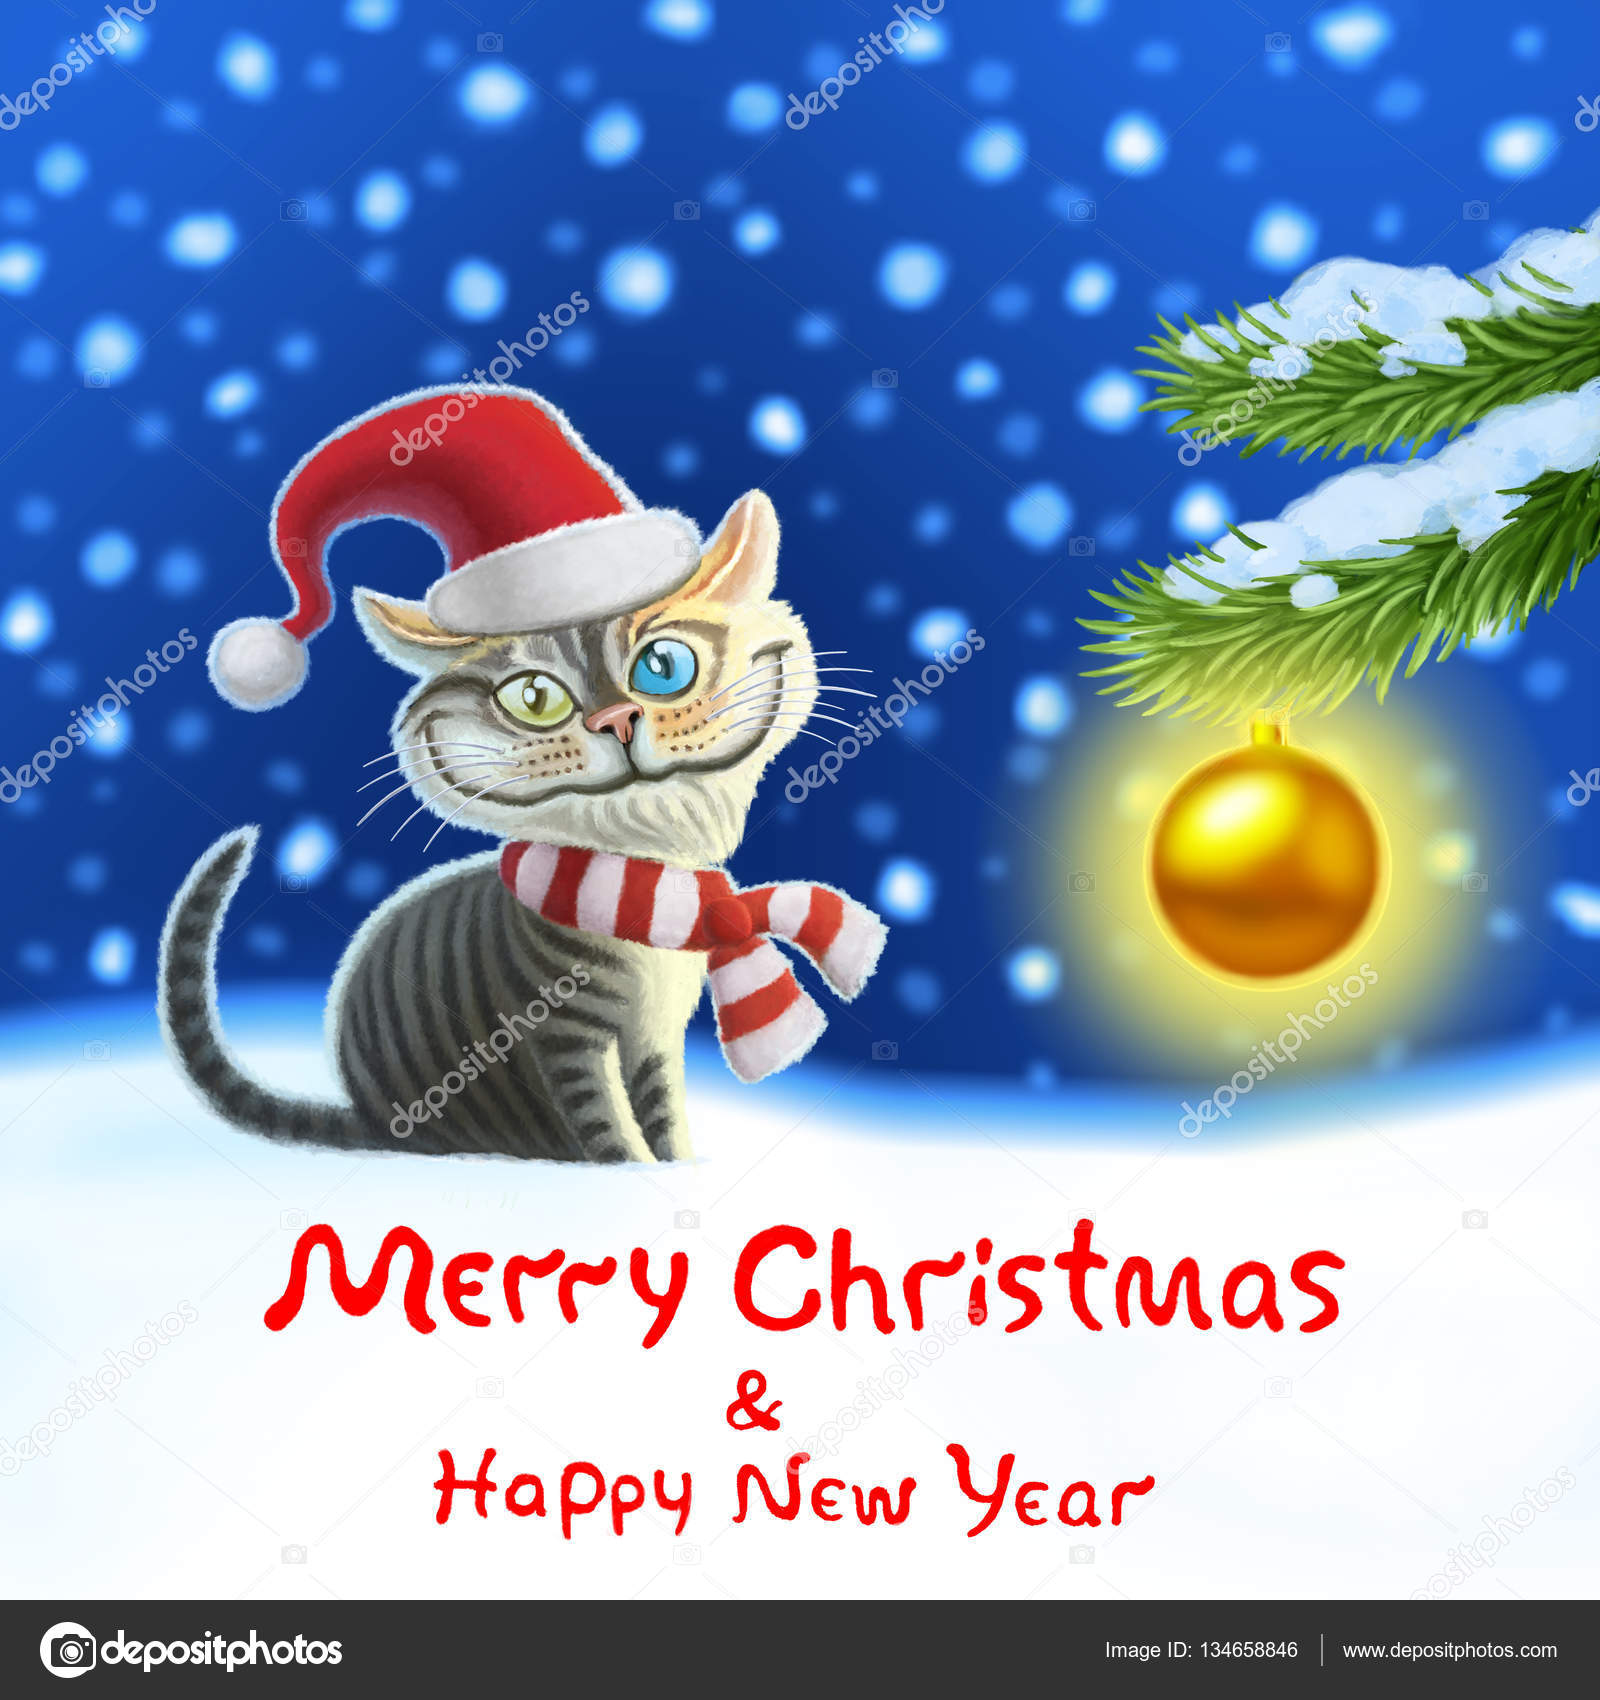 Cheerful Cat Martin Wishes Everyone A Merry Christmas U0026 Happy New Year ! U2014  Photo By Likozor